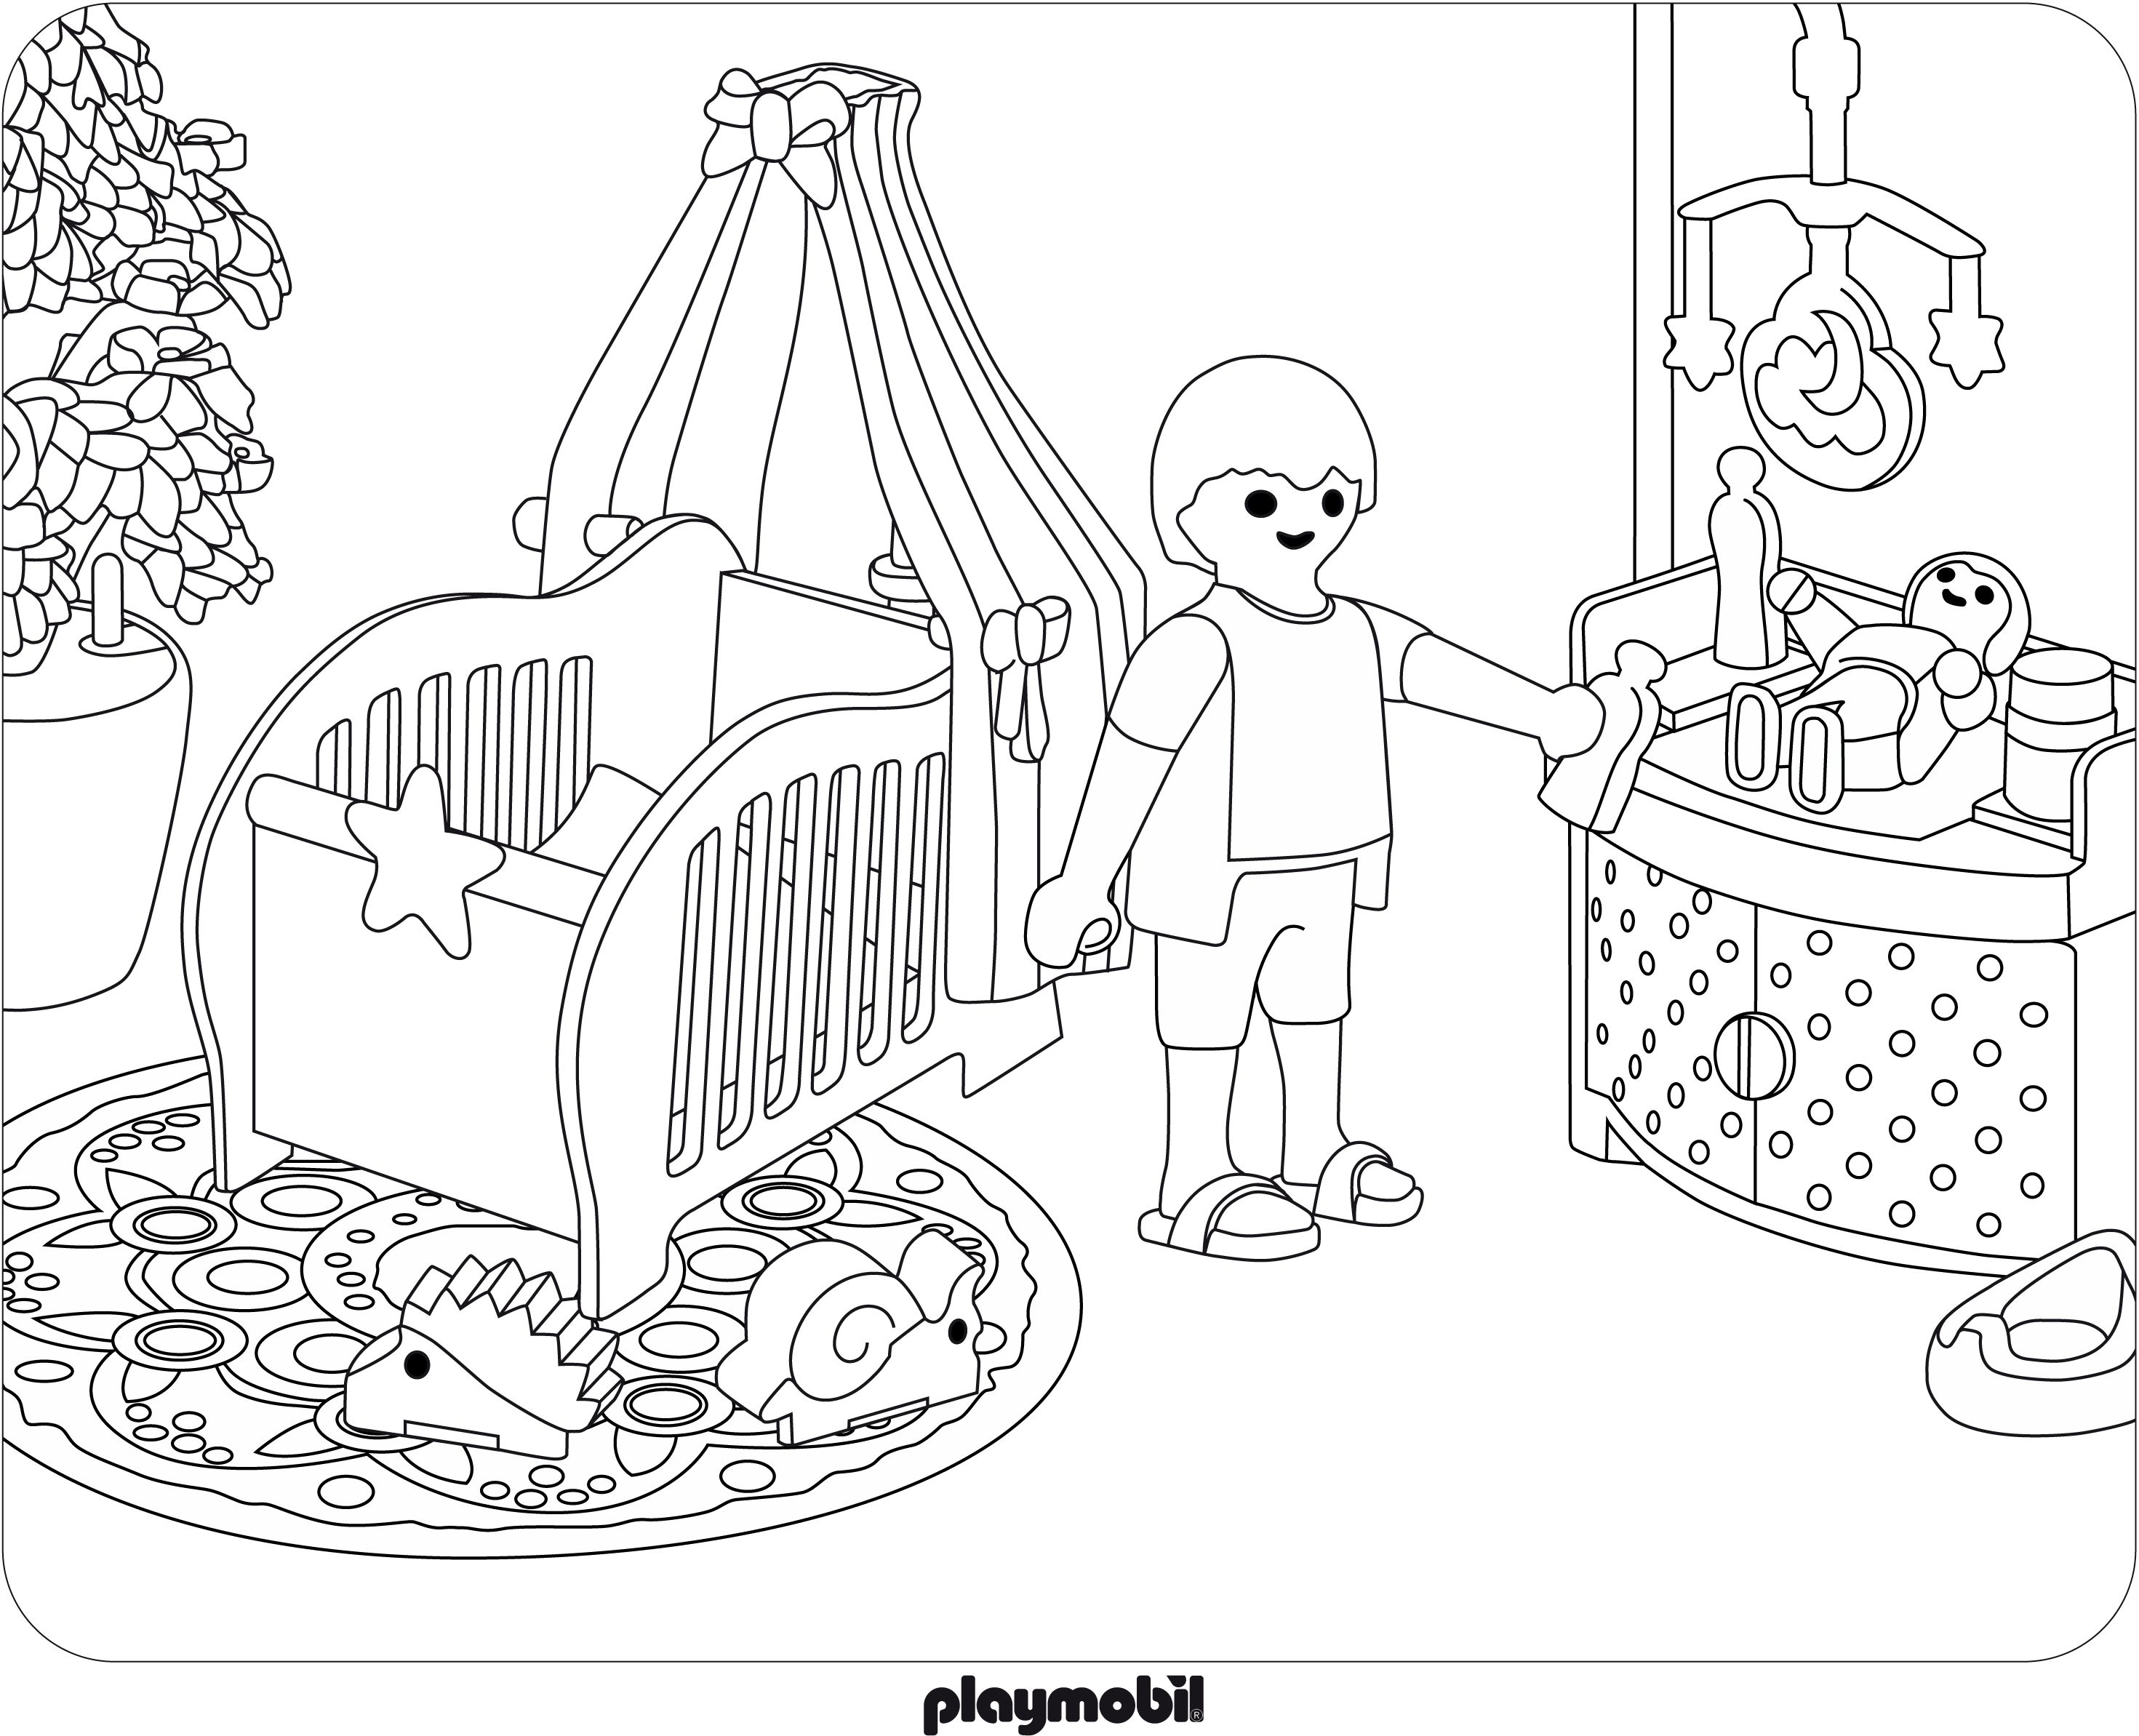 Fee Playmobil Coloriage Licorne.The Best Free Playmobil Coloring Page Images Download From 39 Free